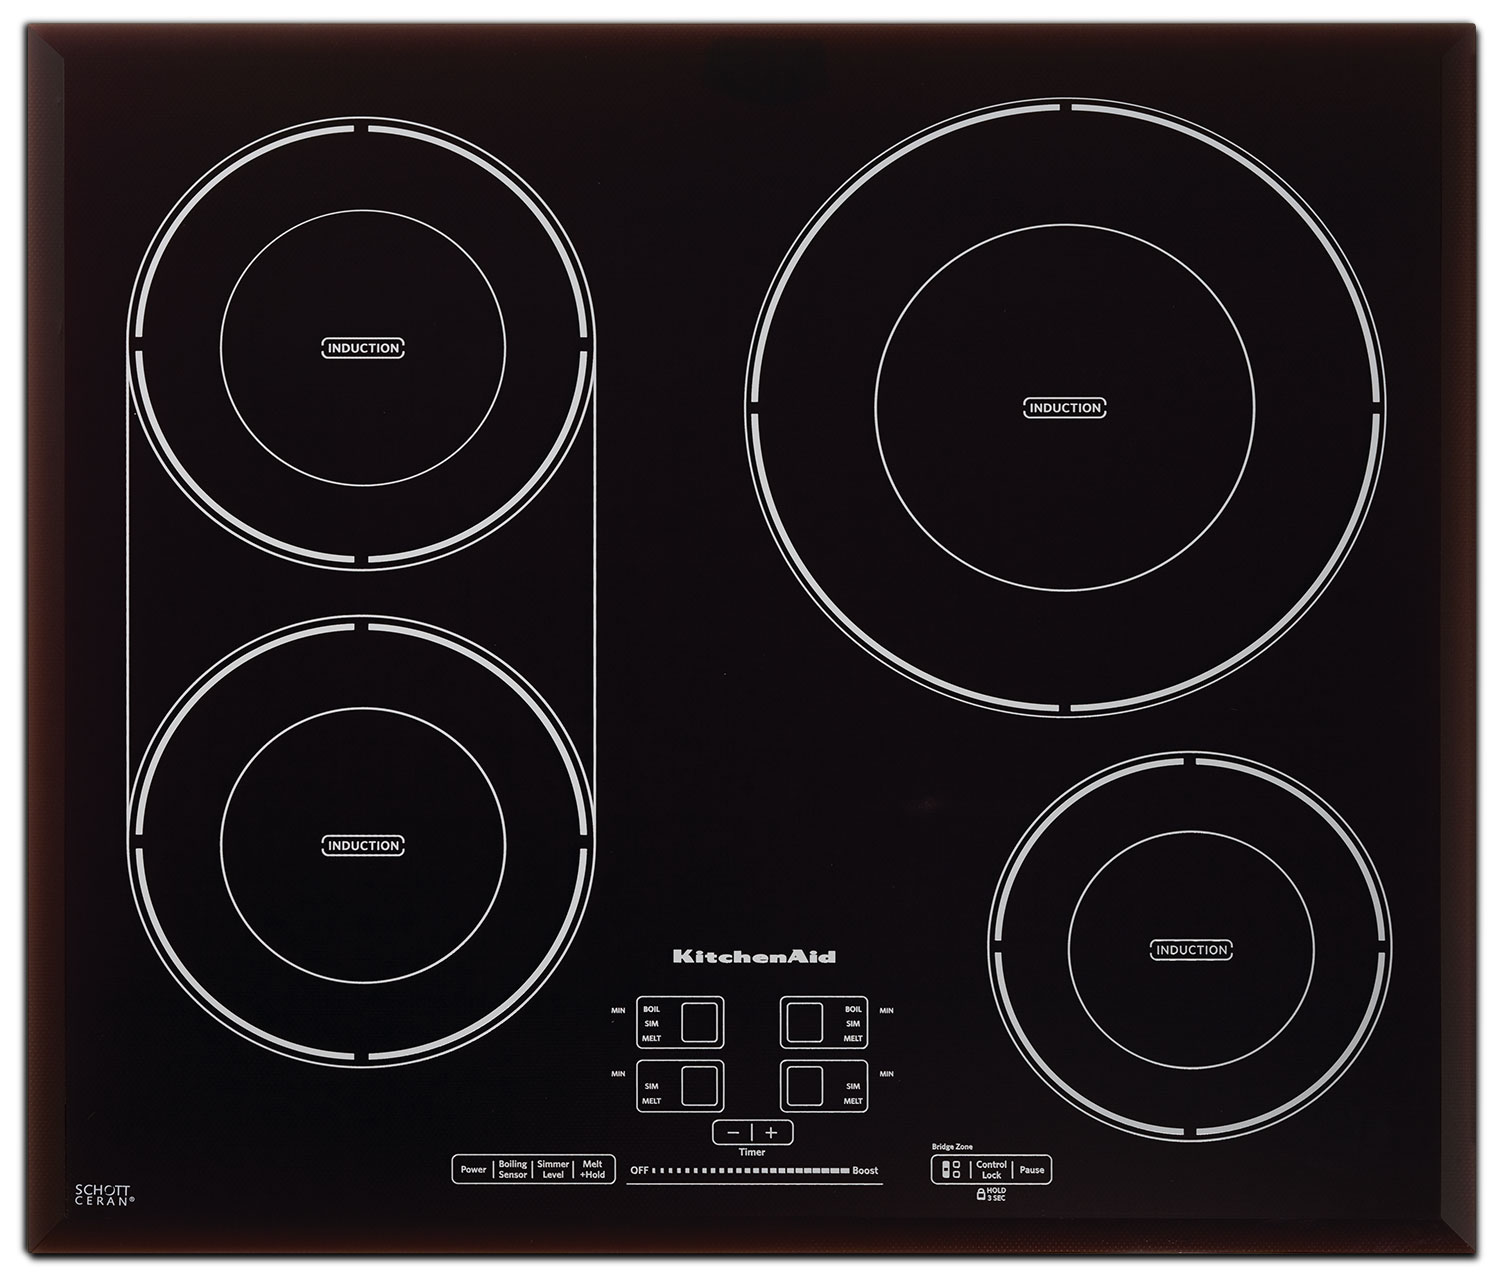 "KitchenAid Black Stainless Steel 24"" Electric Cooktop - KICU540BSS"